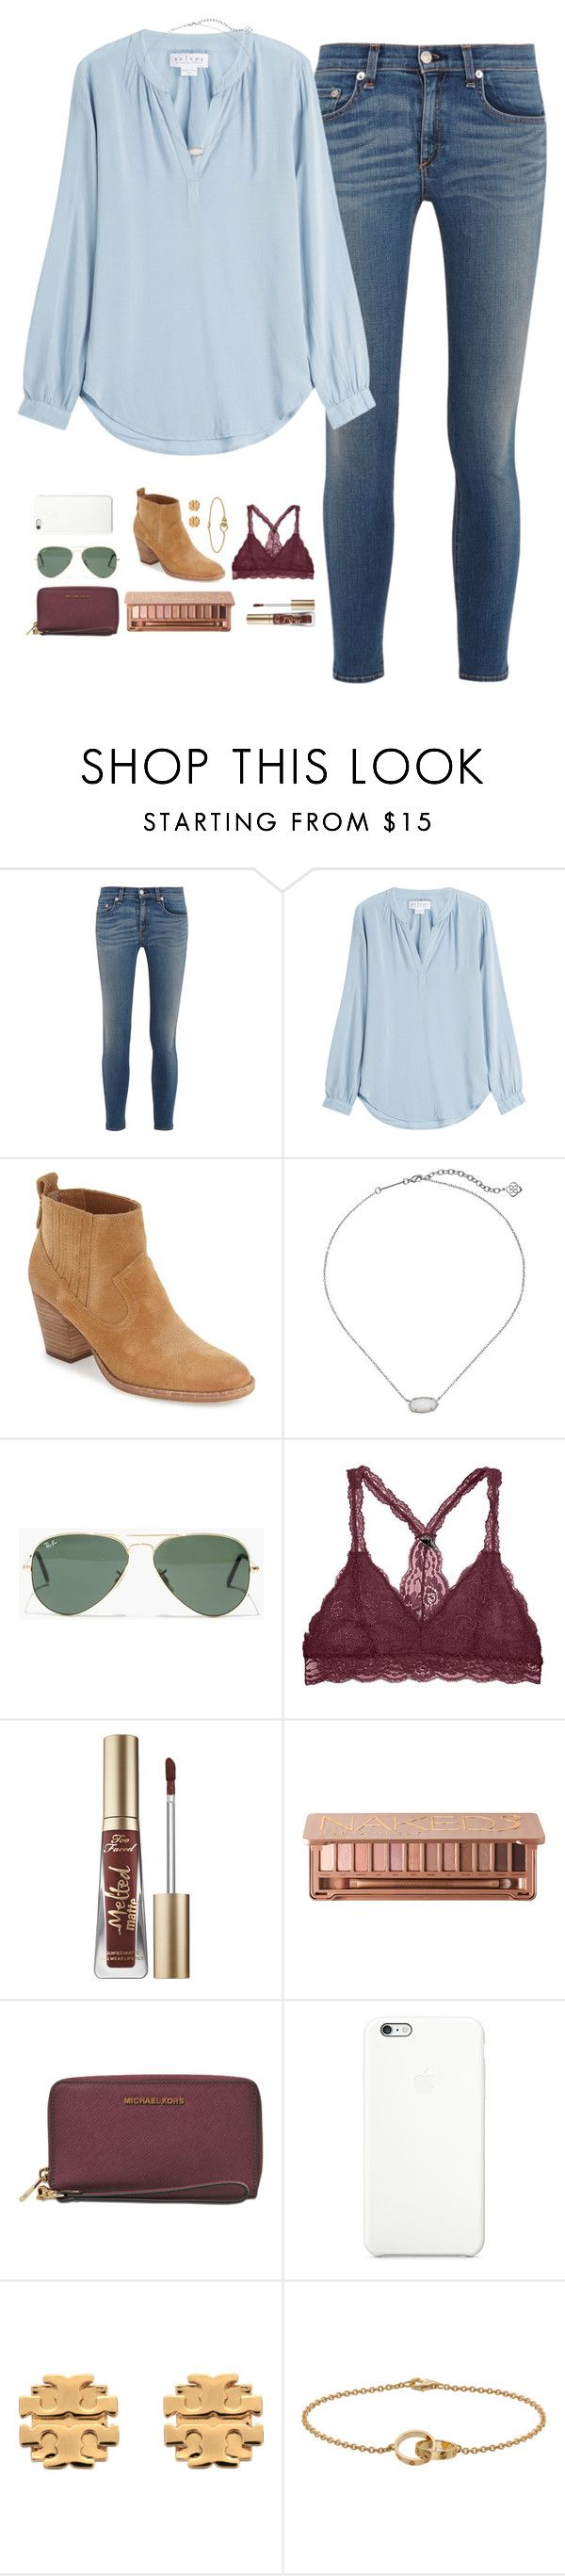 """""""it's spirit week for me!"""" by cjstefan ❤ liked on Polyvore featuring rag & bone, Velvet, Dolce Vita, Kendra Scott, Madewell, Too Faced Cosmetics, Urban Decay, MICHAEL Michael Kors, Tory Burch and Cartier"""